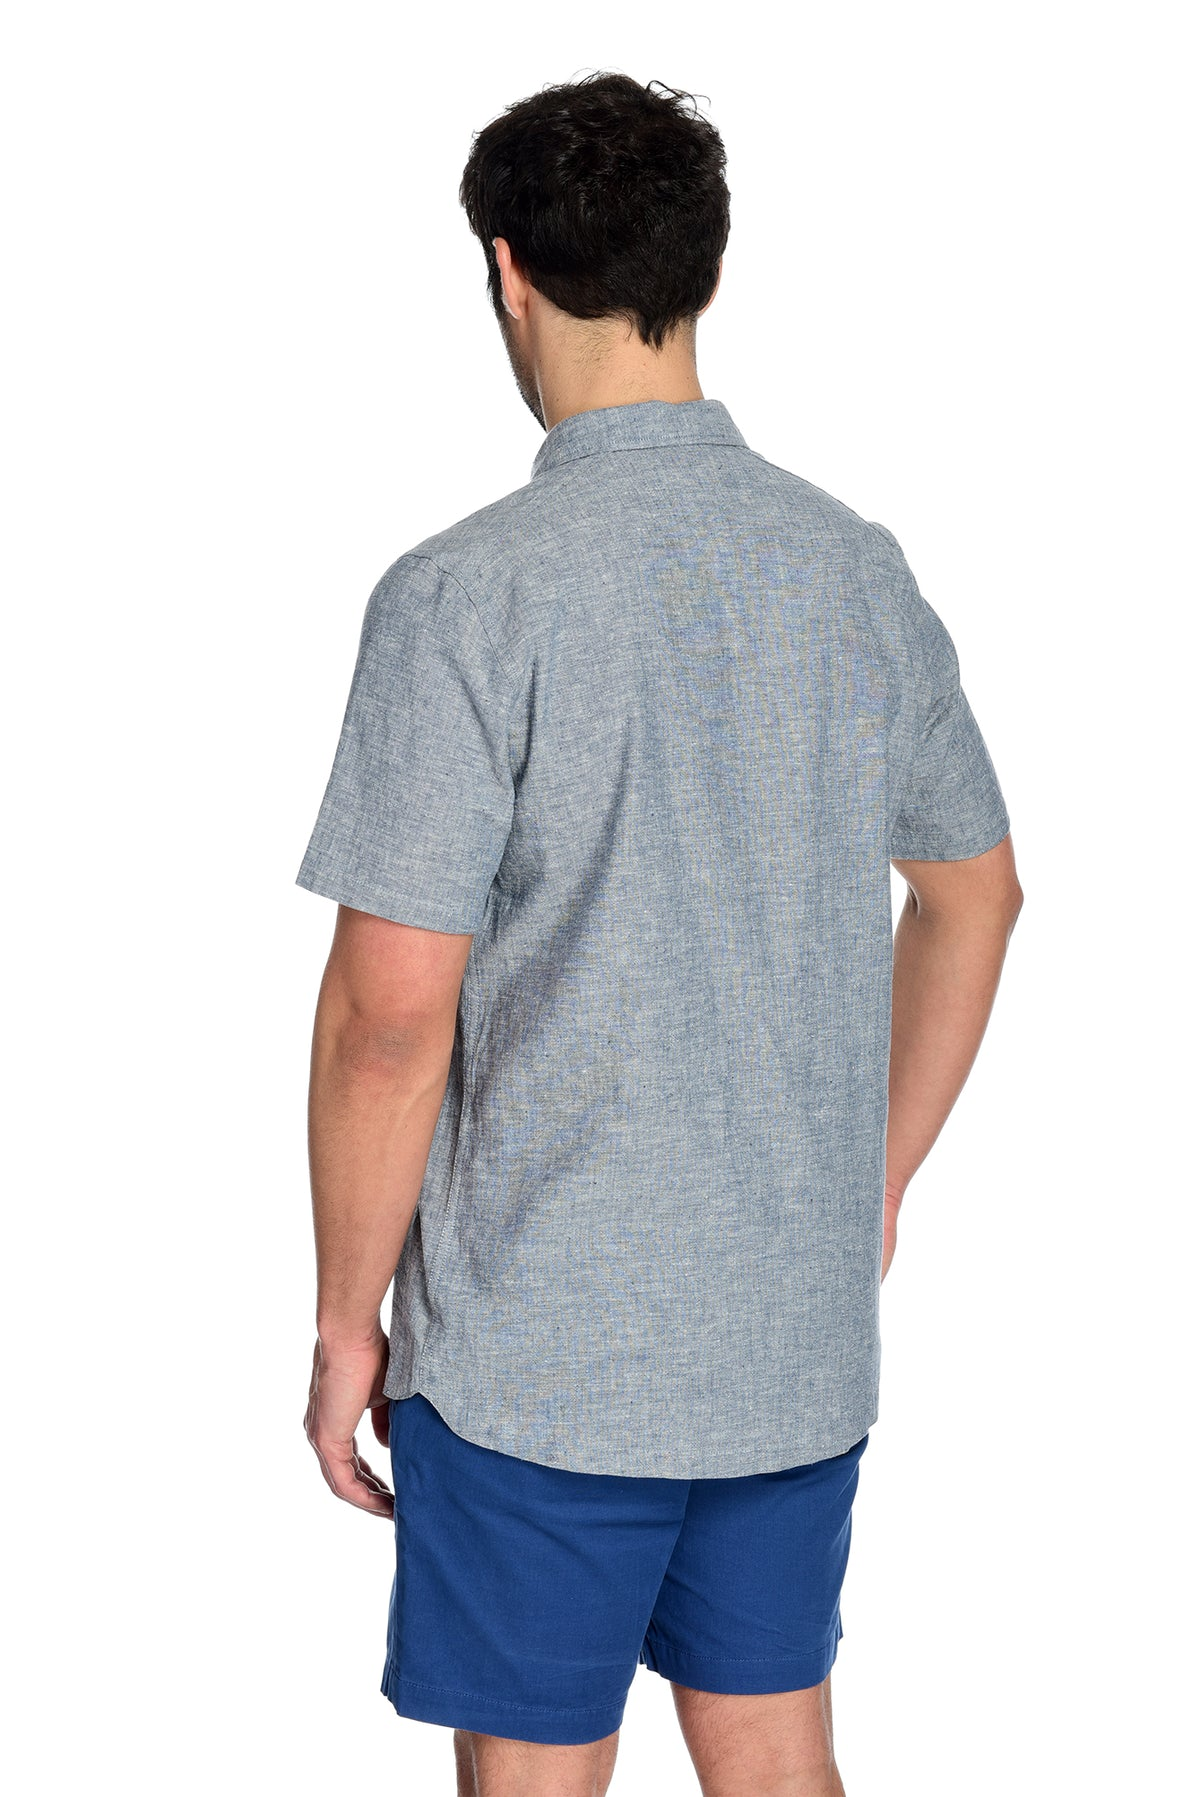 Men's Short Sleeve Shirt the Radium Short Sleeve Hemp and Organic Cotton Shirt by Fisher + Baker Insignia Backside Drop Hem